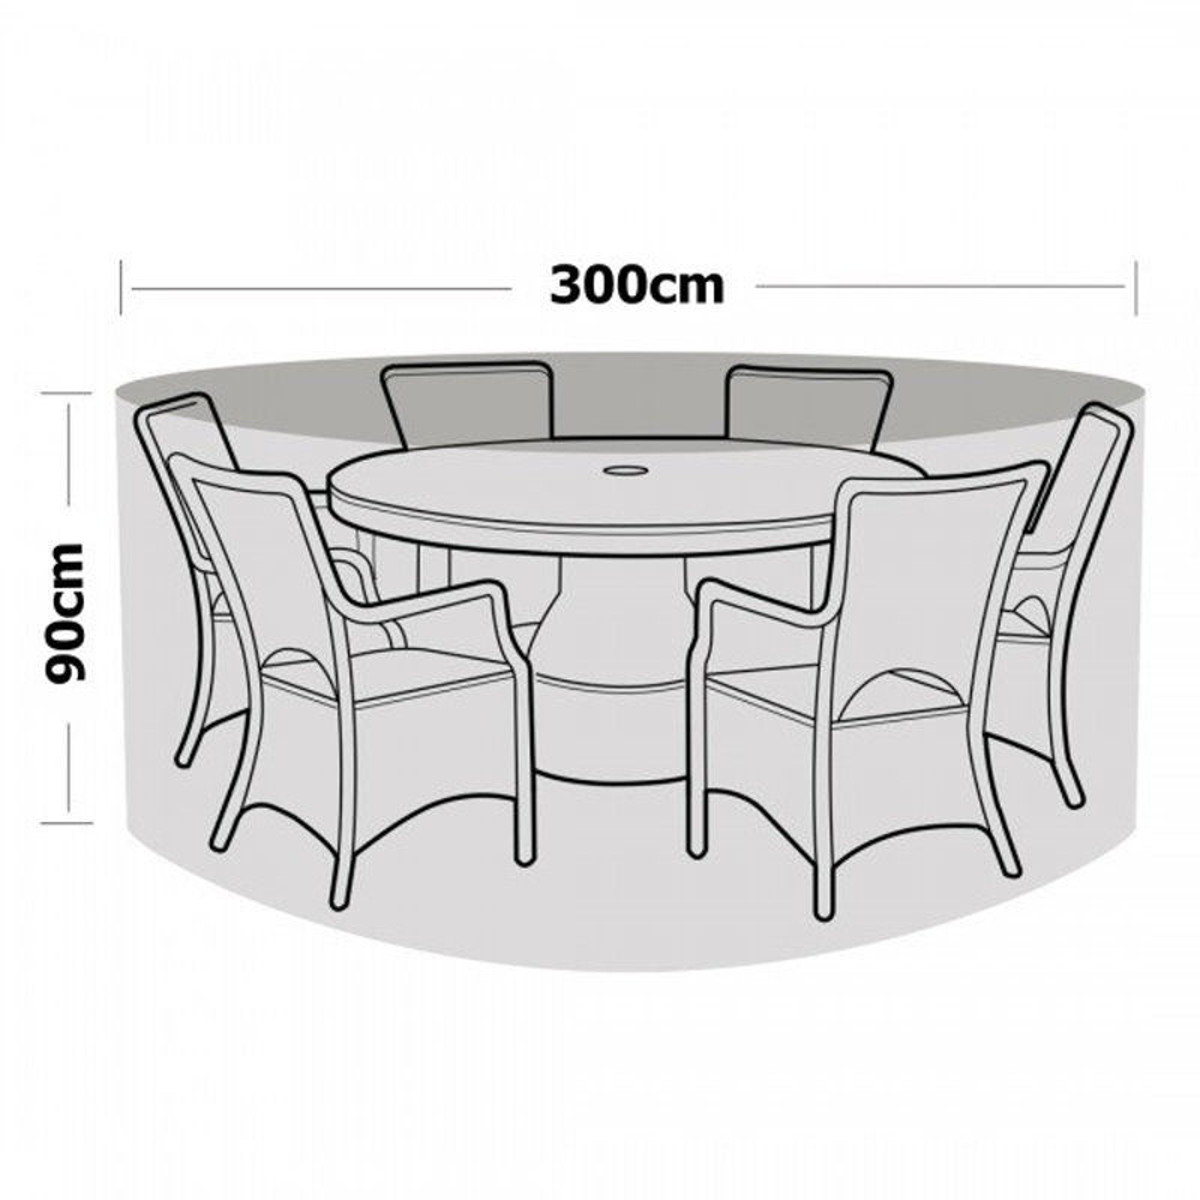 Waterproof table runner outdoor patio round chair cover polyester table cover furniture protection cover textiles 300x90cm in tablecloths from home garden